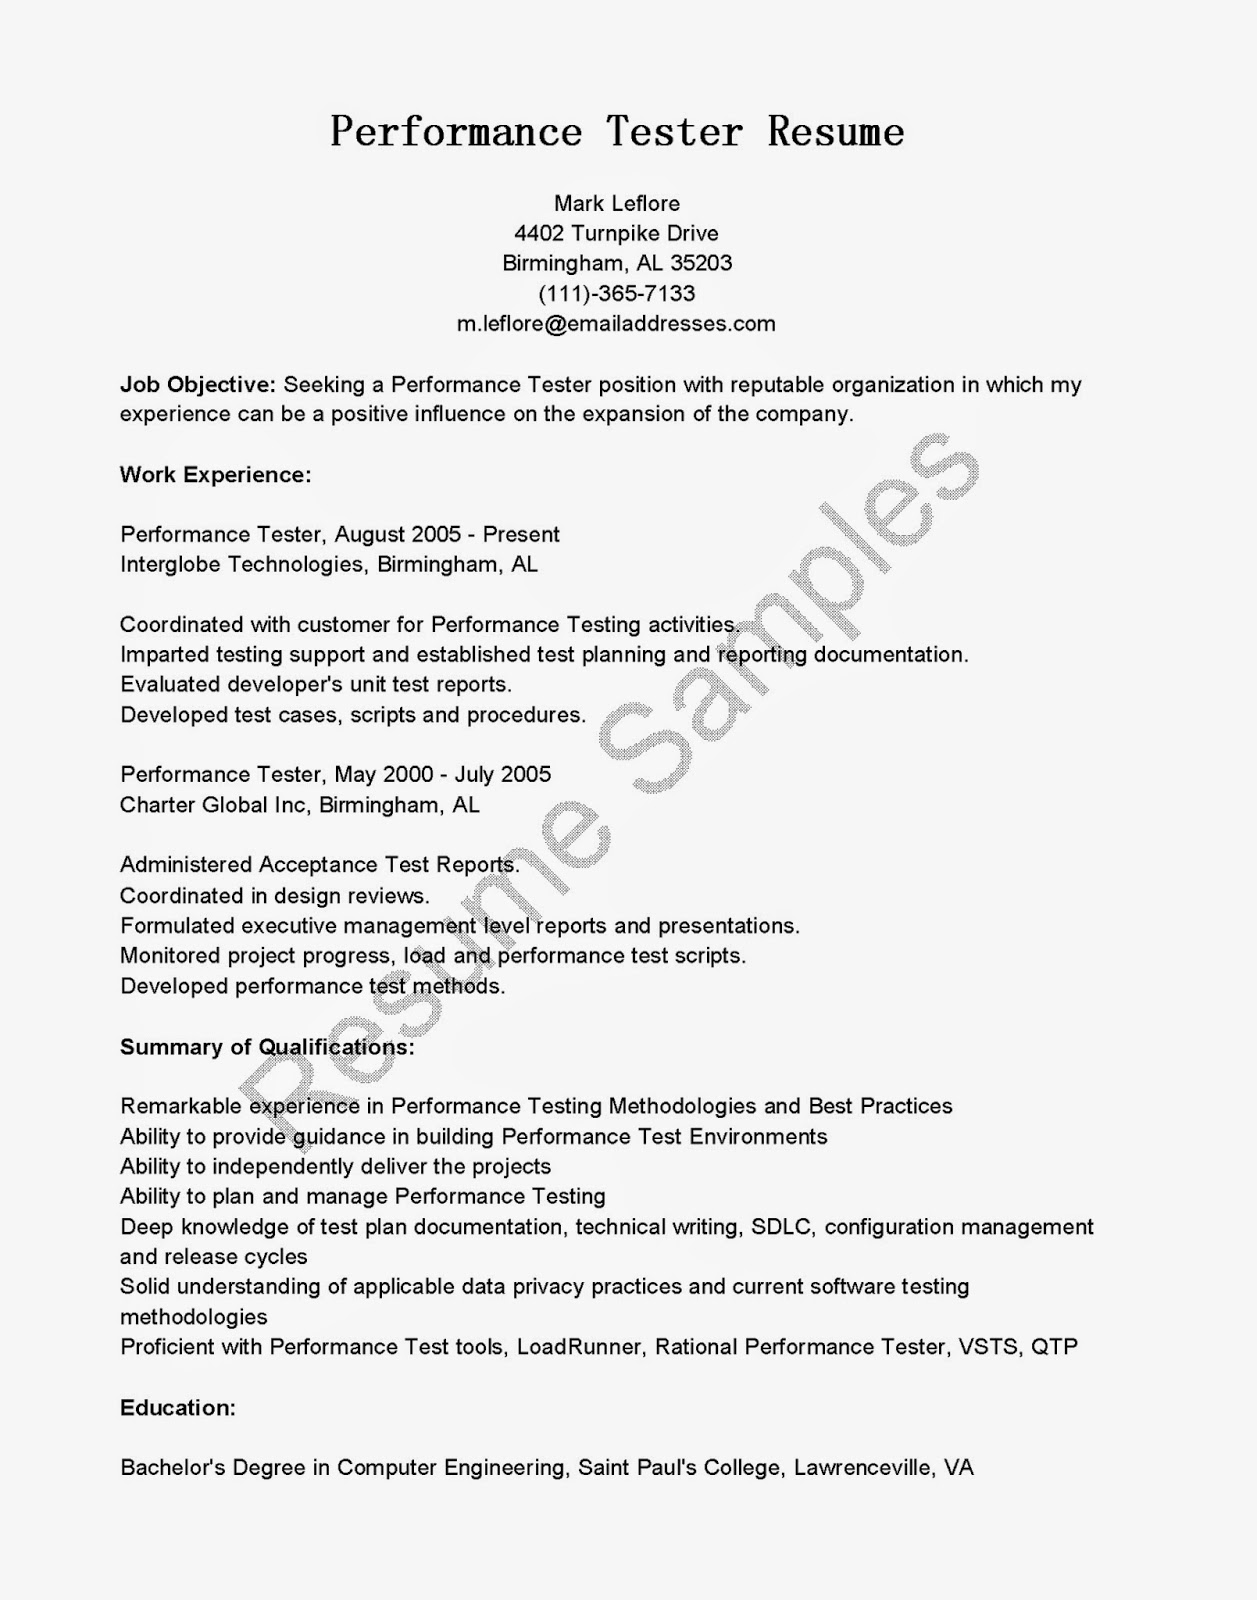 resume sles performance tester resume sle